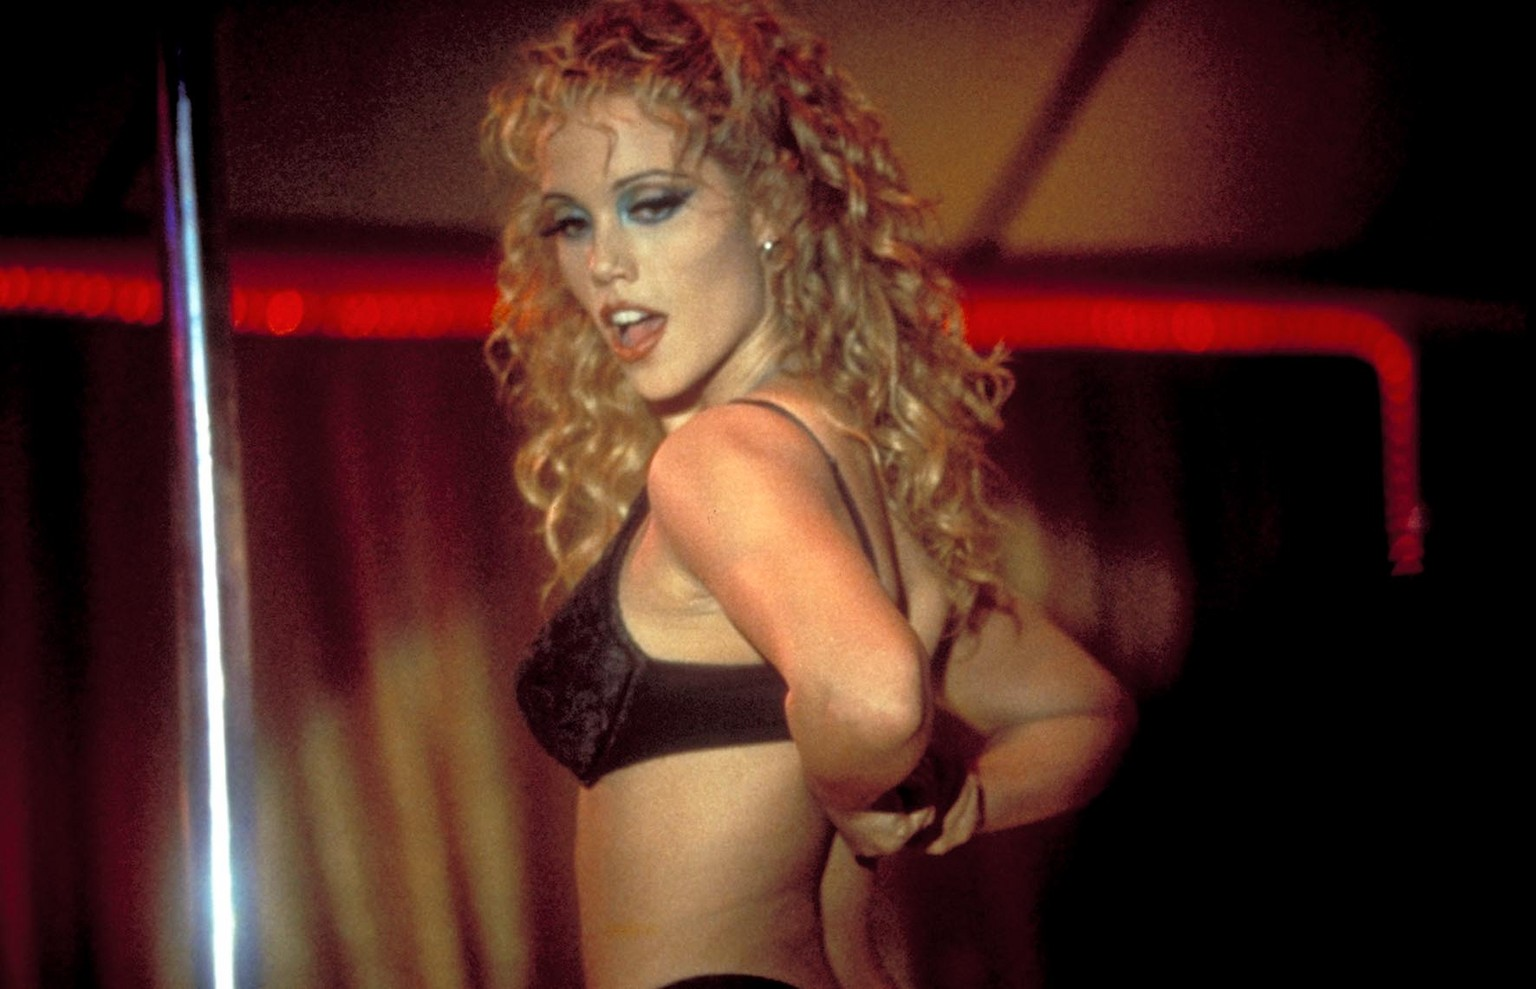 0802180152727_42_Elizabeth Berkley in Showgirls (1995).jpg